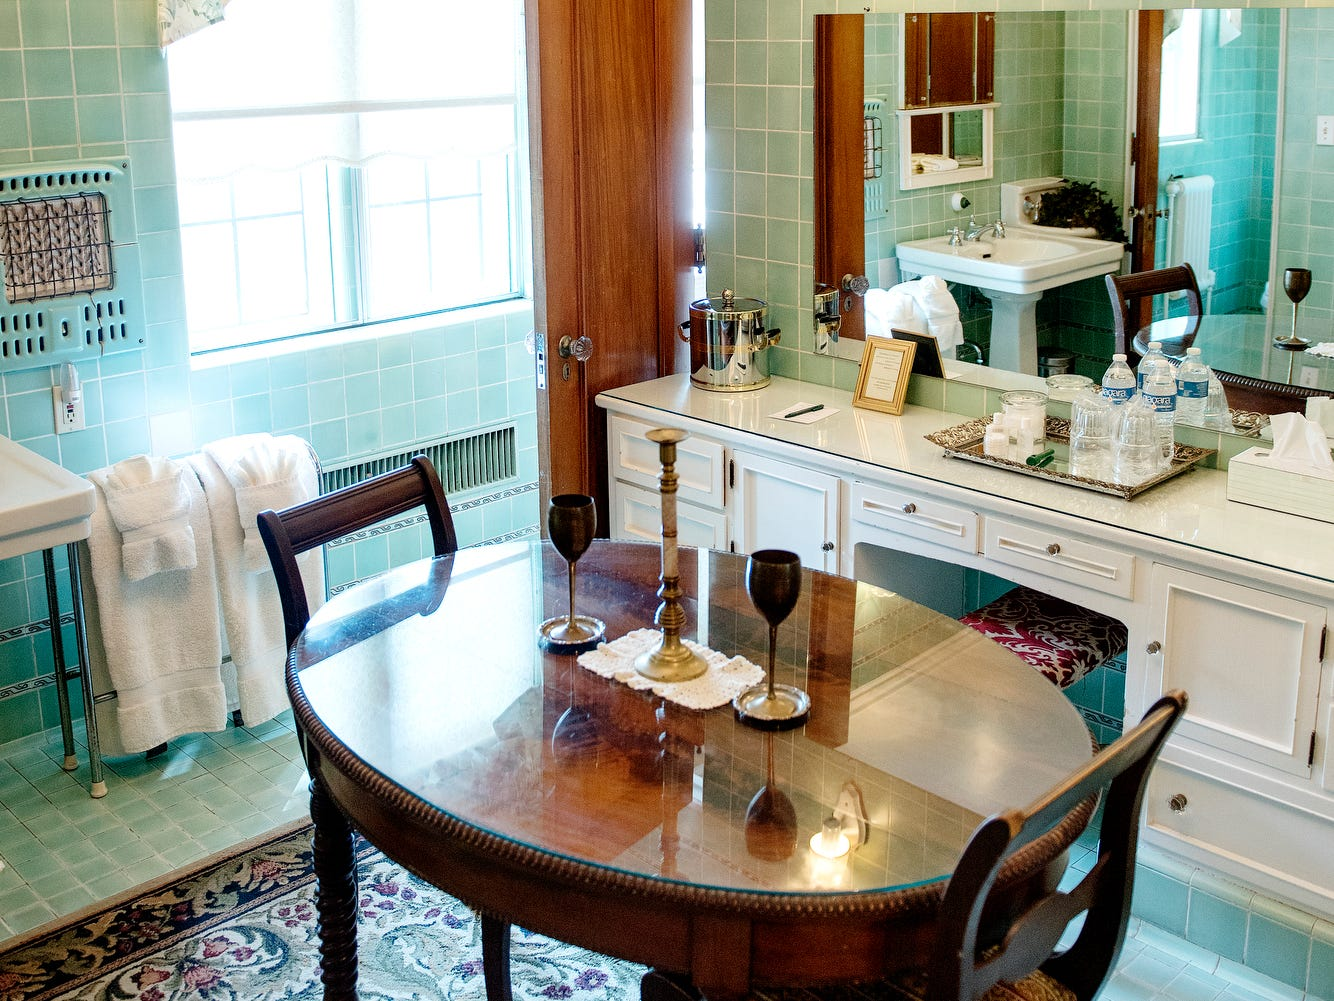 A table for two inside the Bath suite at the English Inn on Tuesday, Aug. 28, 2018, in Eaton Rapids. The 17-room mansion was once the home of Oldsmobile president Irving Reuter and his wife, Janet.